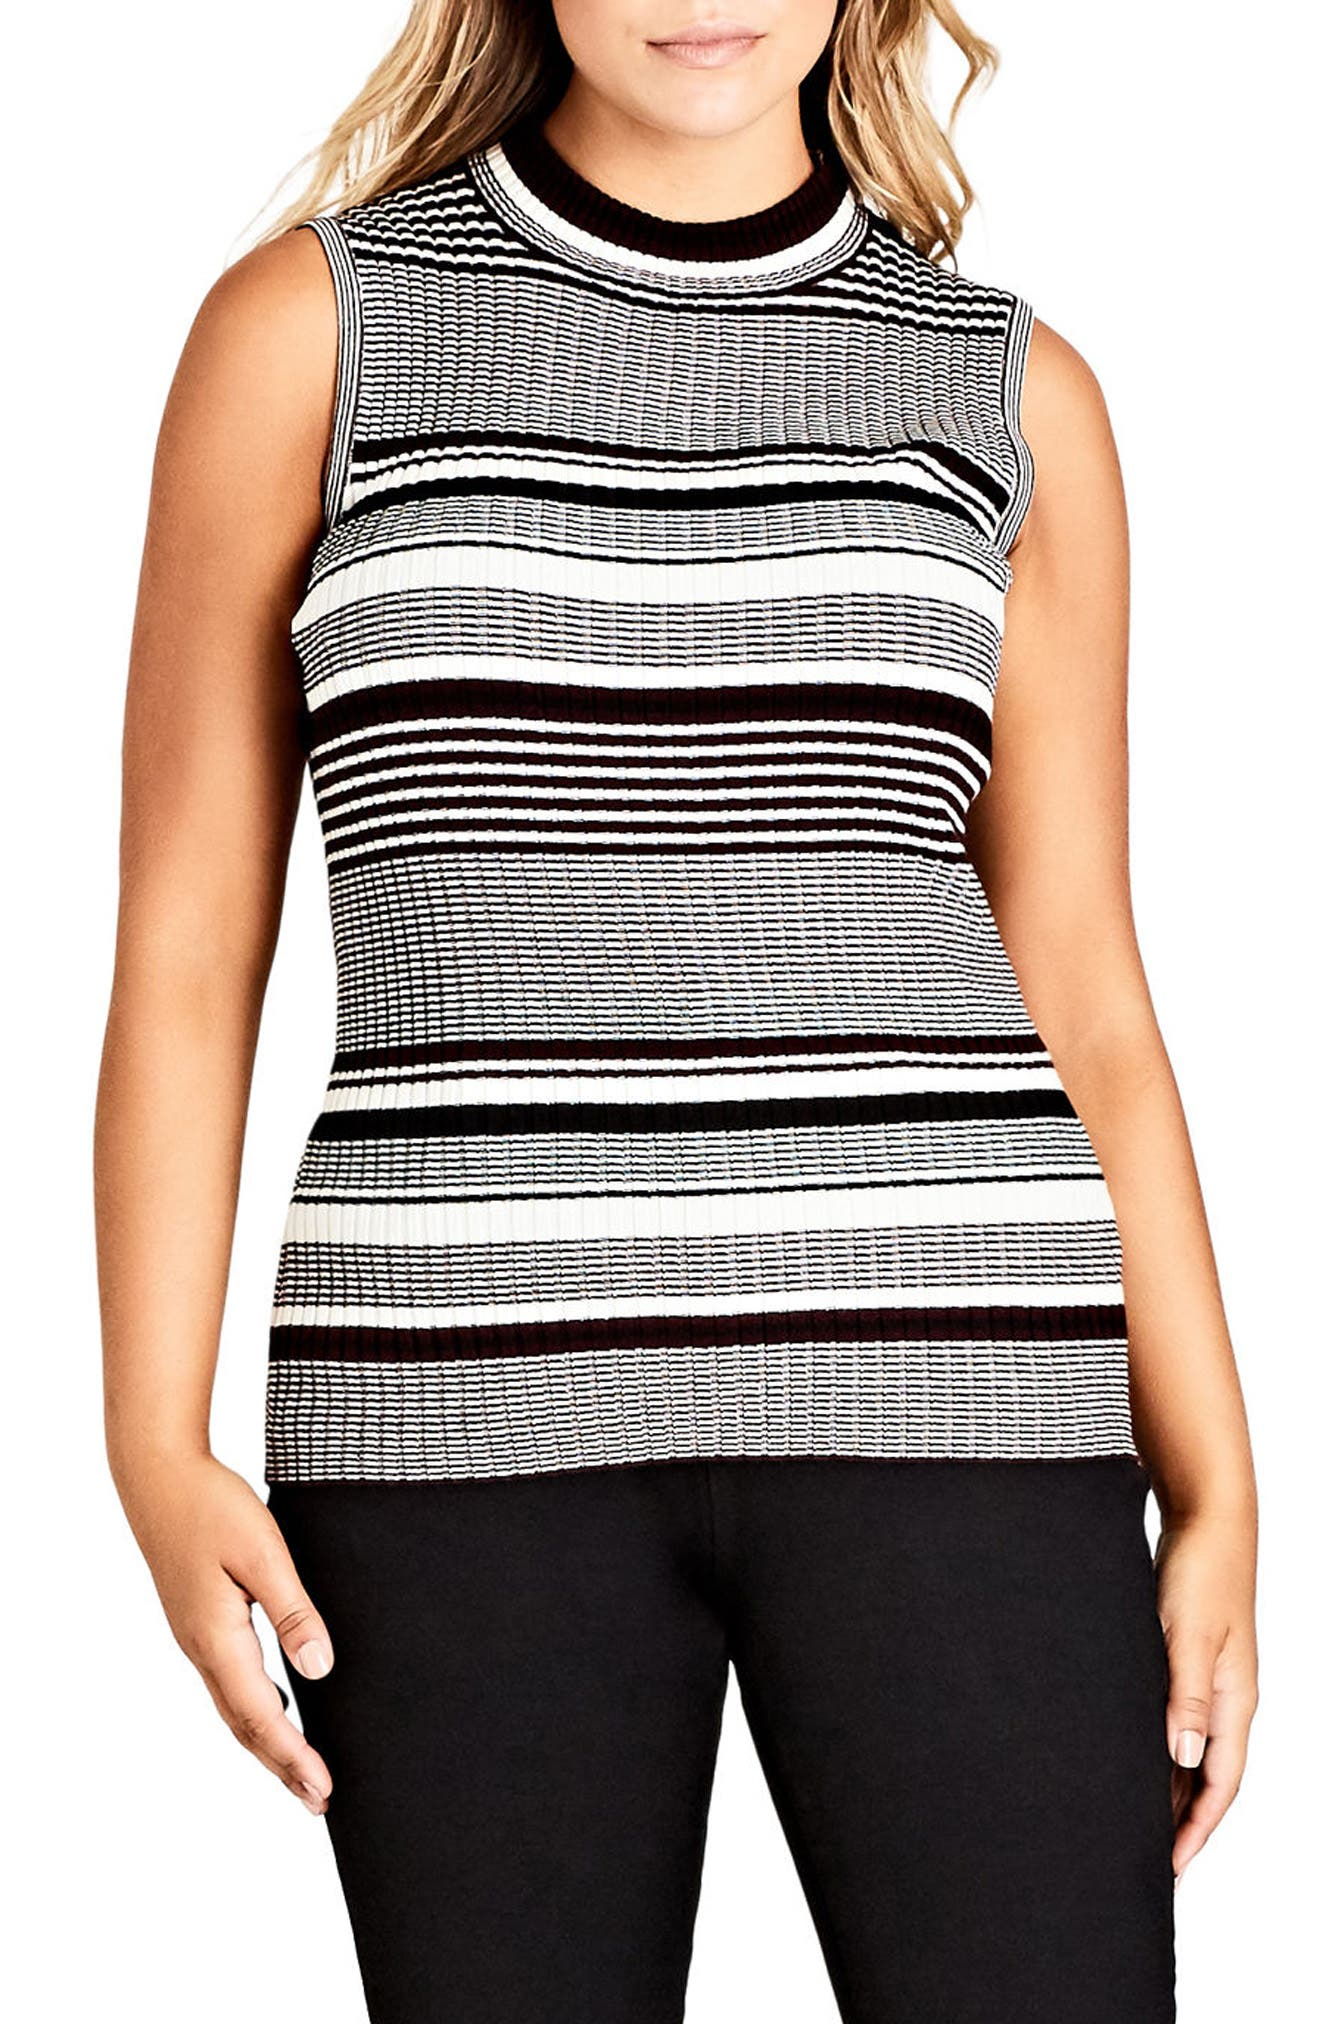 Main Image - Chic City Stripe Play Top (Plus Size)